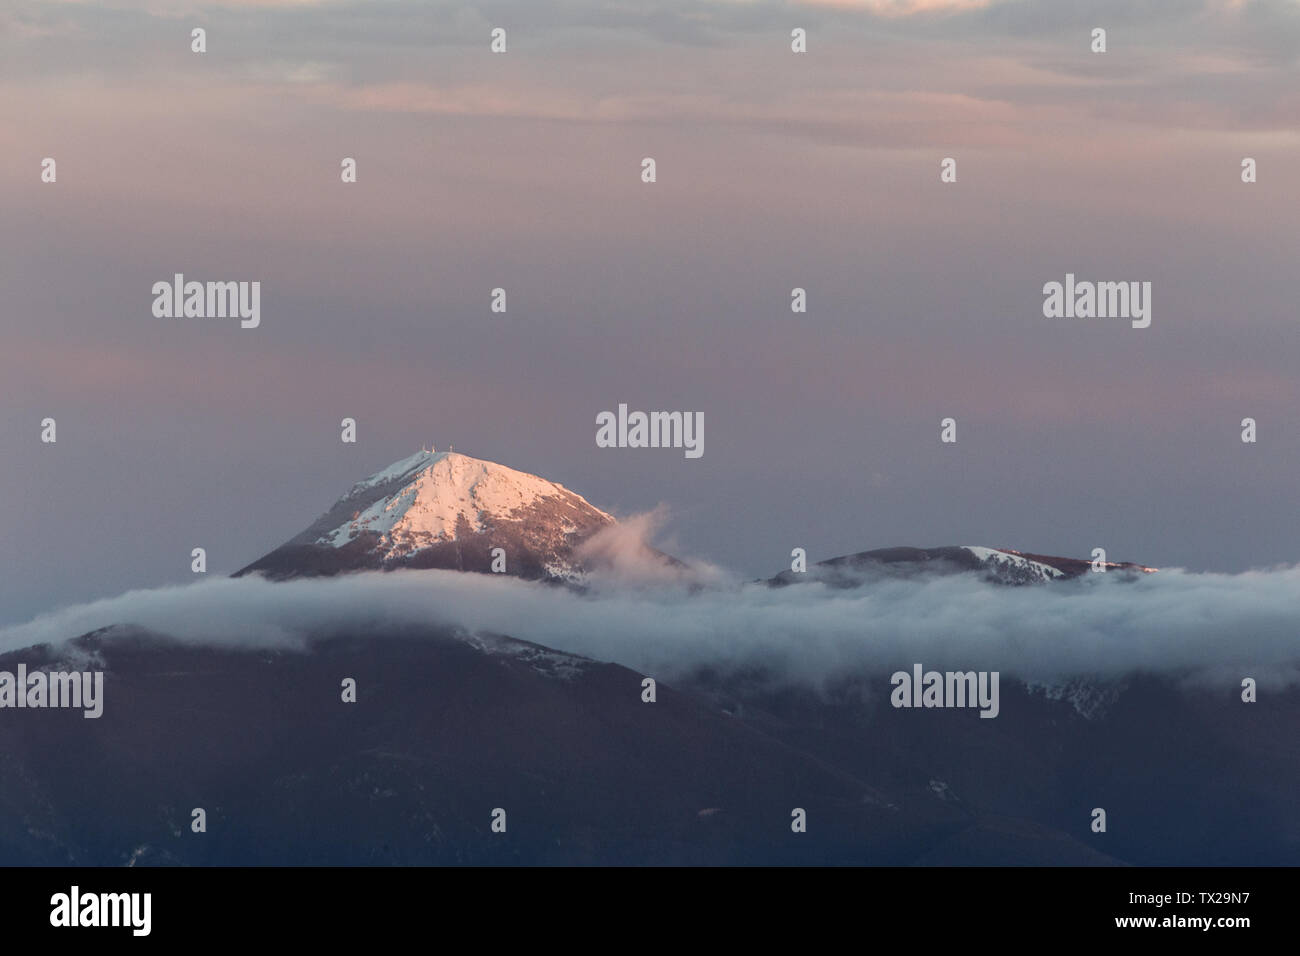 Mountain top covered by snow in the middle of clouds - Stock Image